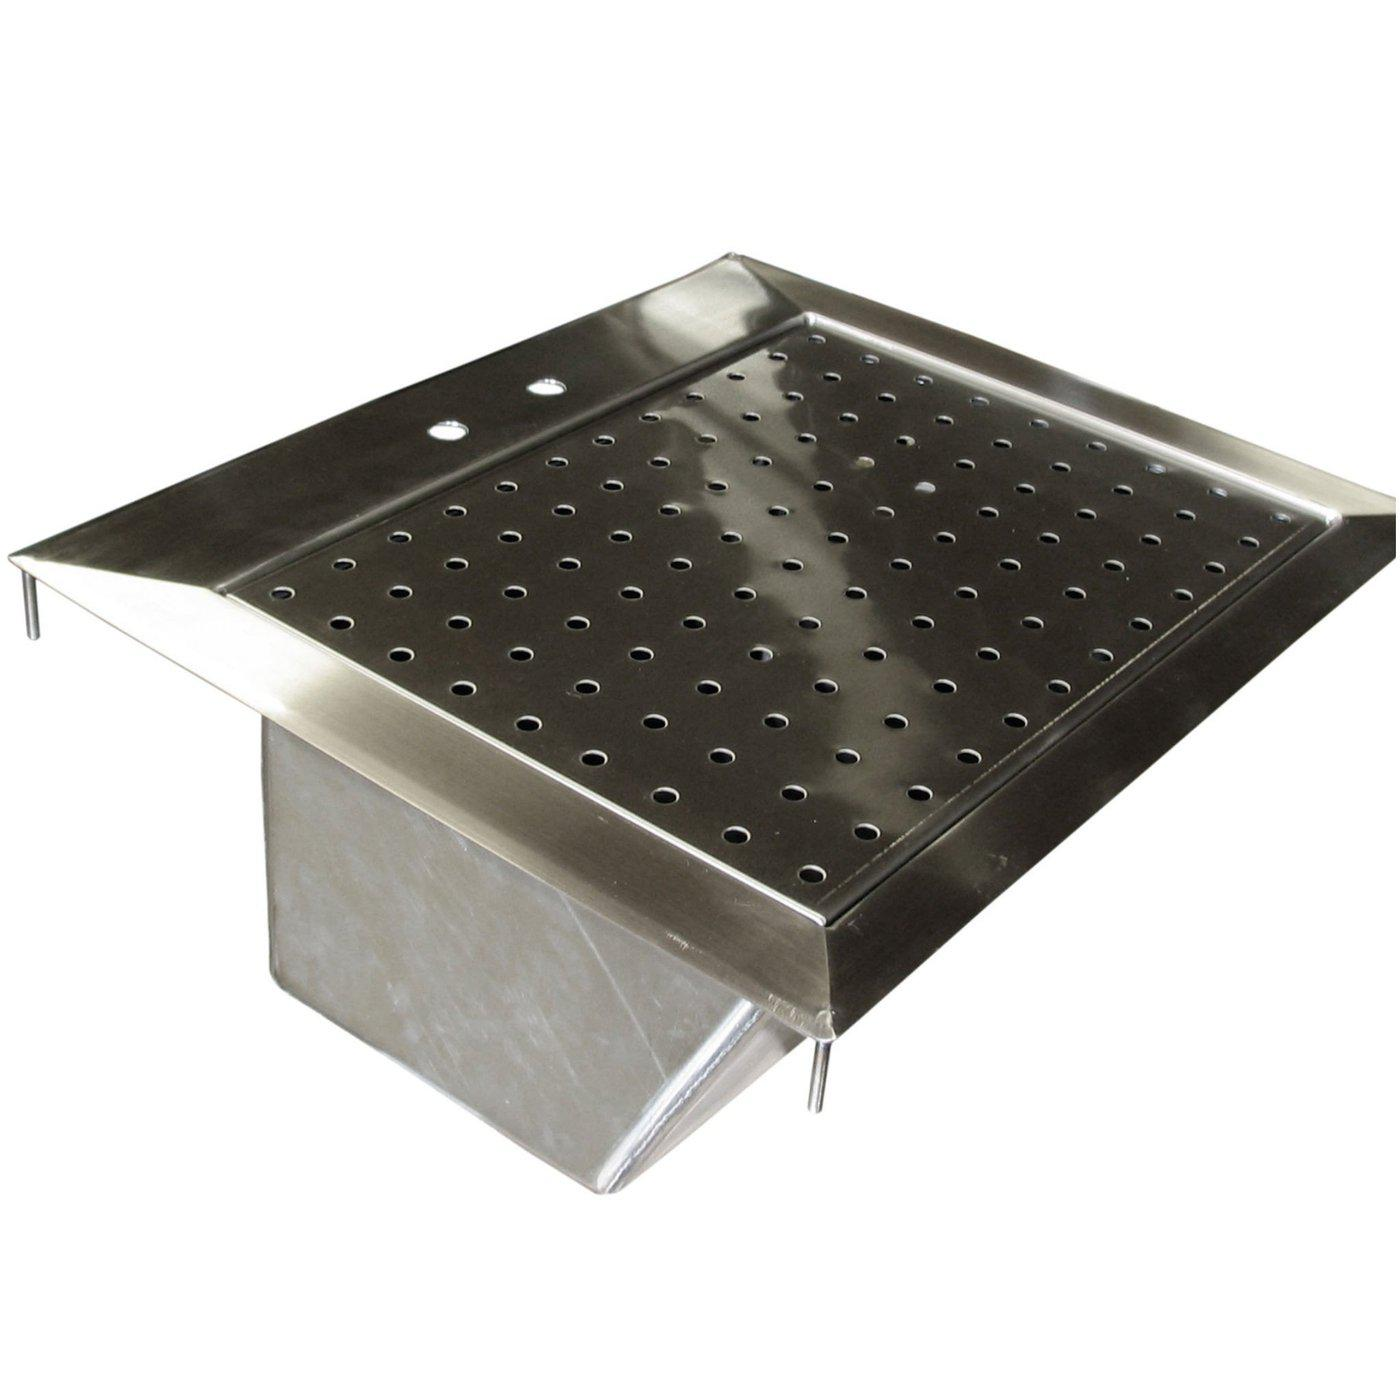 Ventilated Sink Station-Necropsy Dissection Tables-Mortech Manufacturing Company Inc. Quality Stainless Steel Autopsy, Morgue, Funeral Home, Necropsy, Veterinary / Anatomy, Dissection Equipment and Accessories